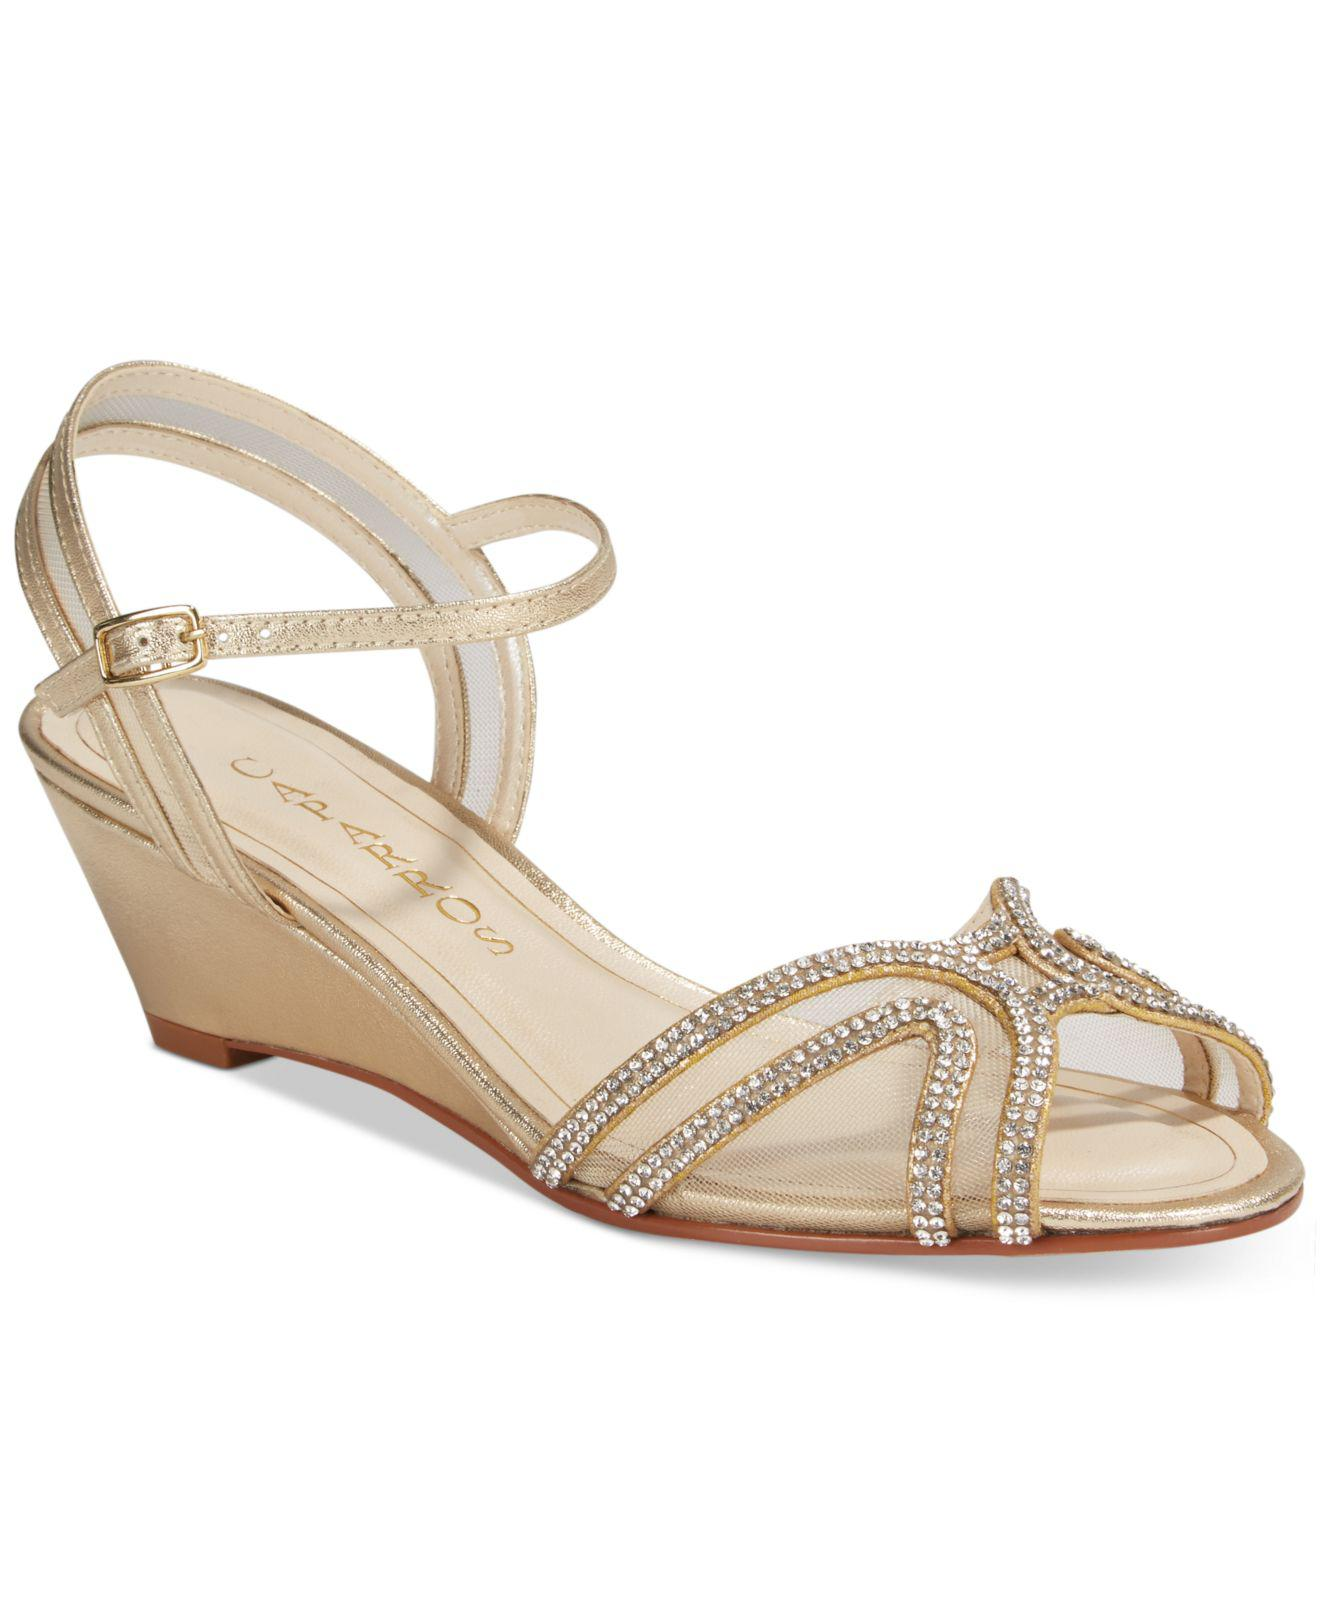 d30490392a9d Lyst - Caparros Hilton Strappy Evening Wedge Sandals in Metallic